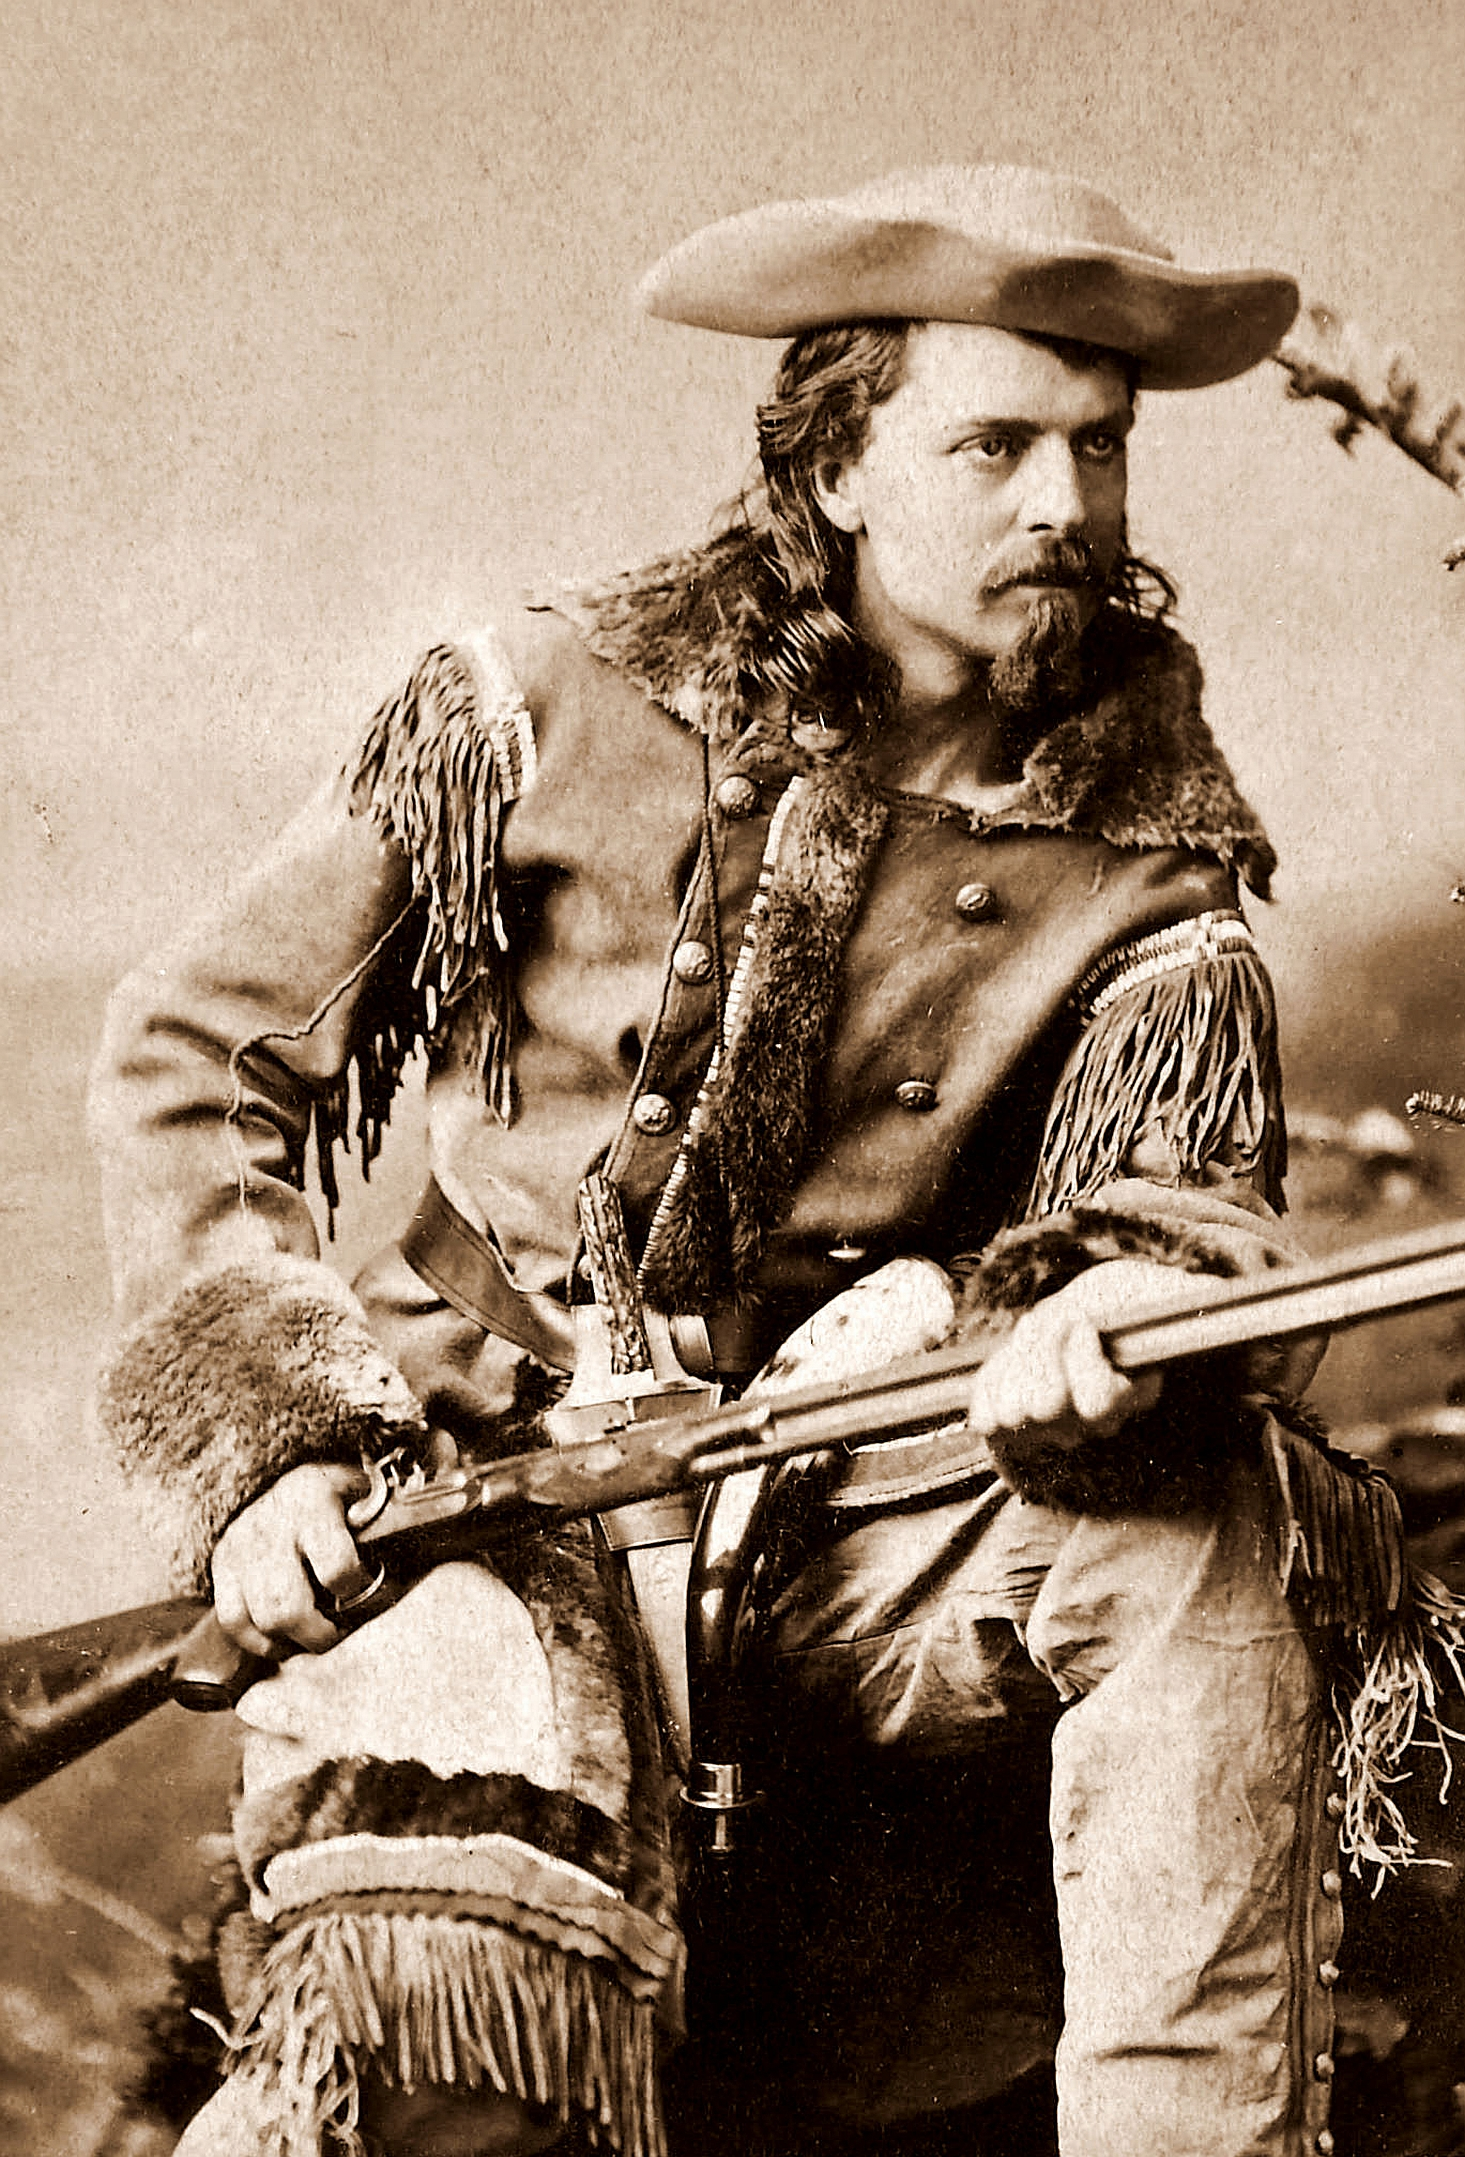 Buffalo_Bill_Cody_by_Sarony,_c1880